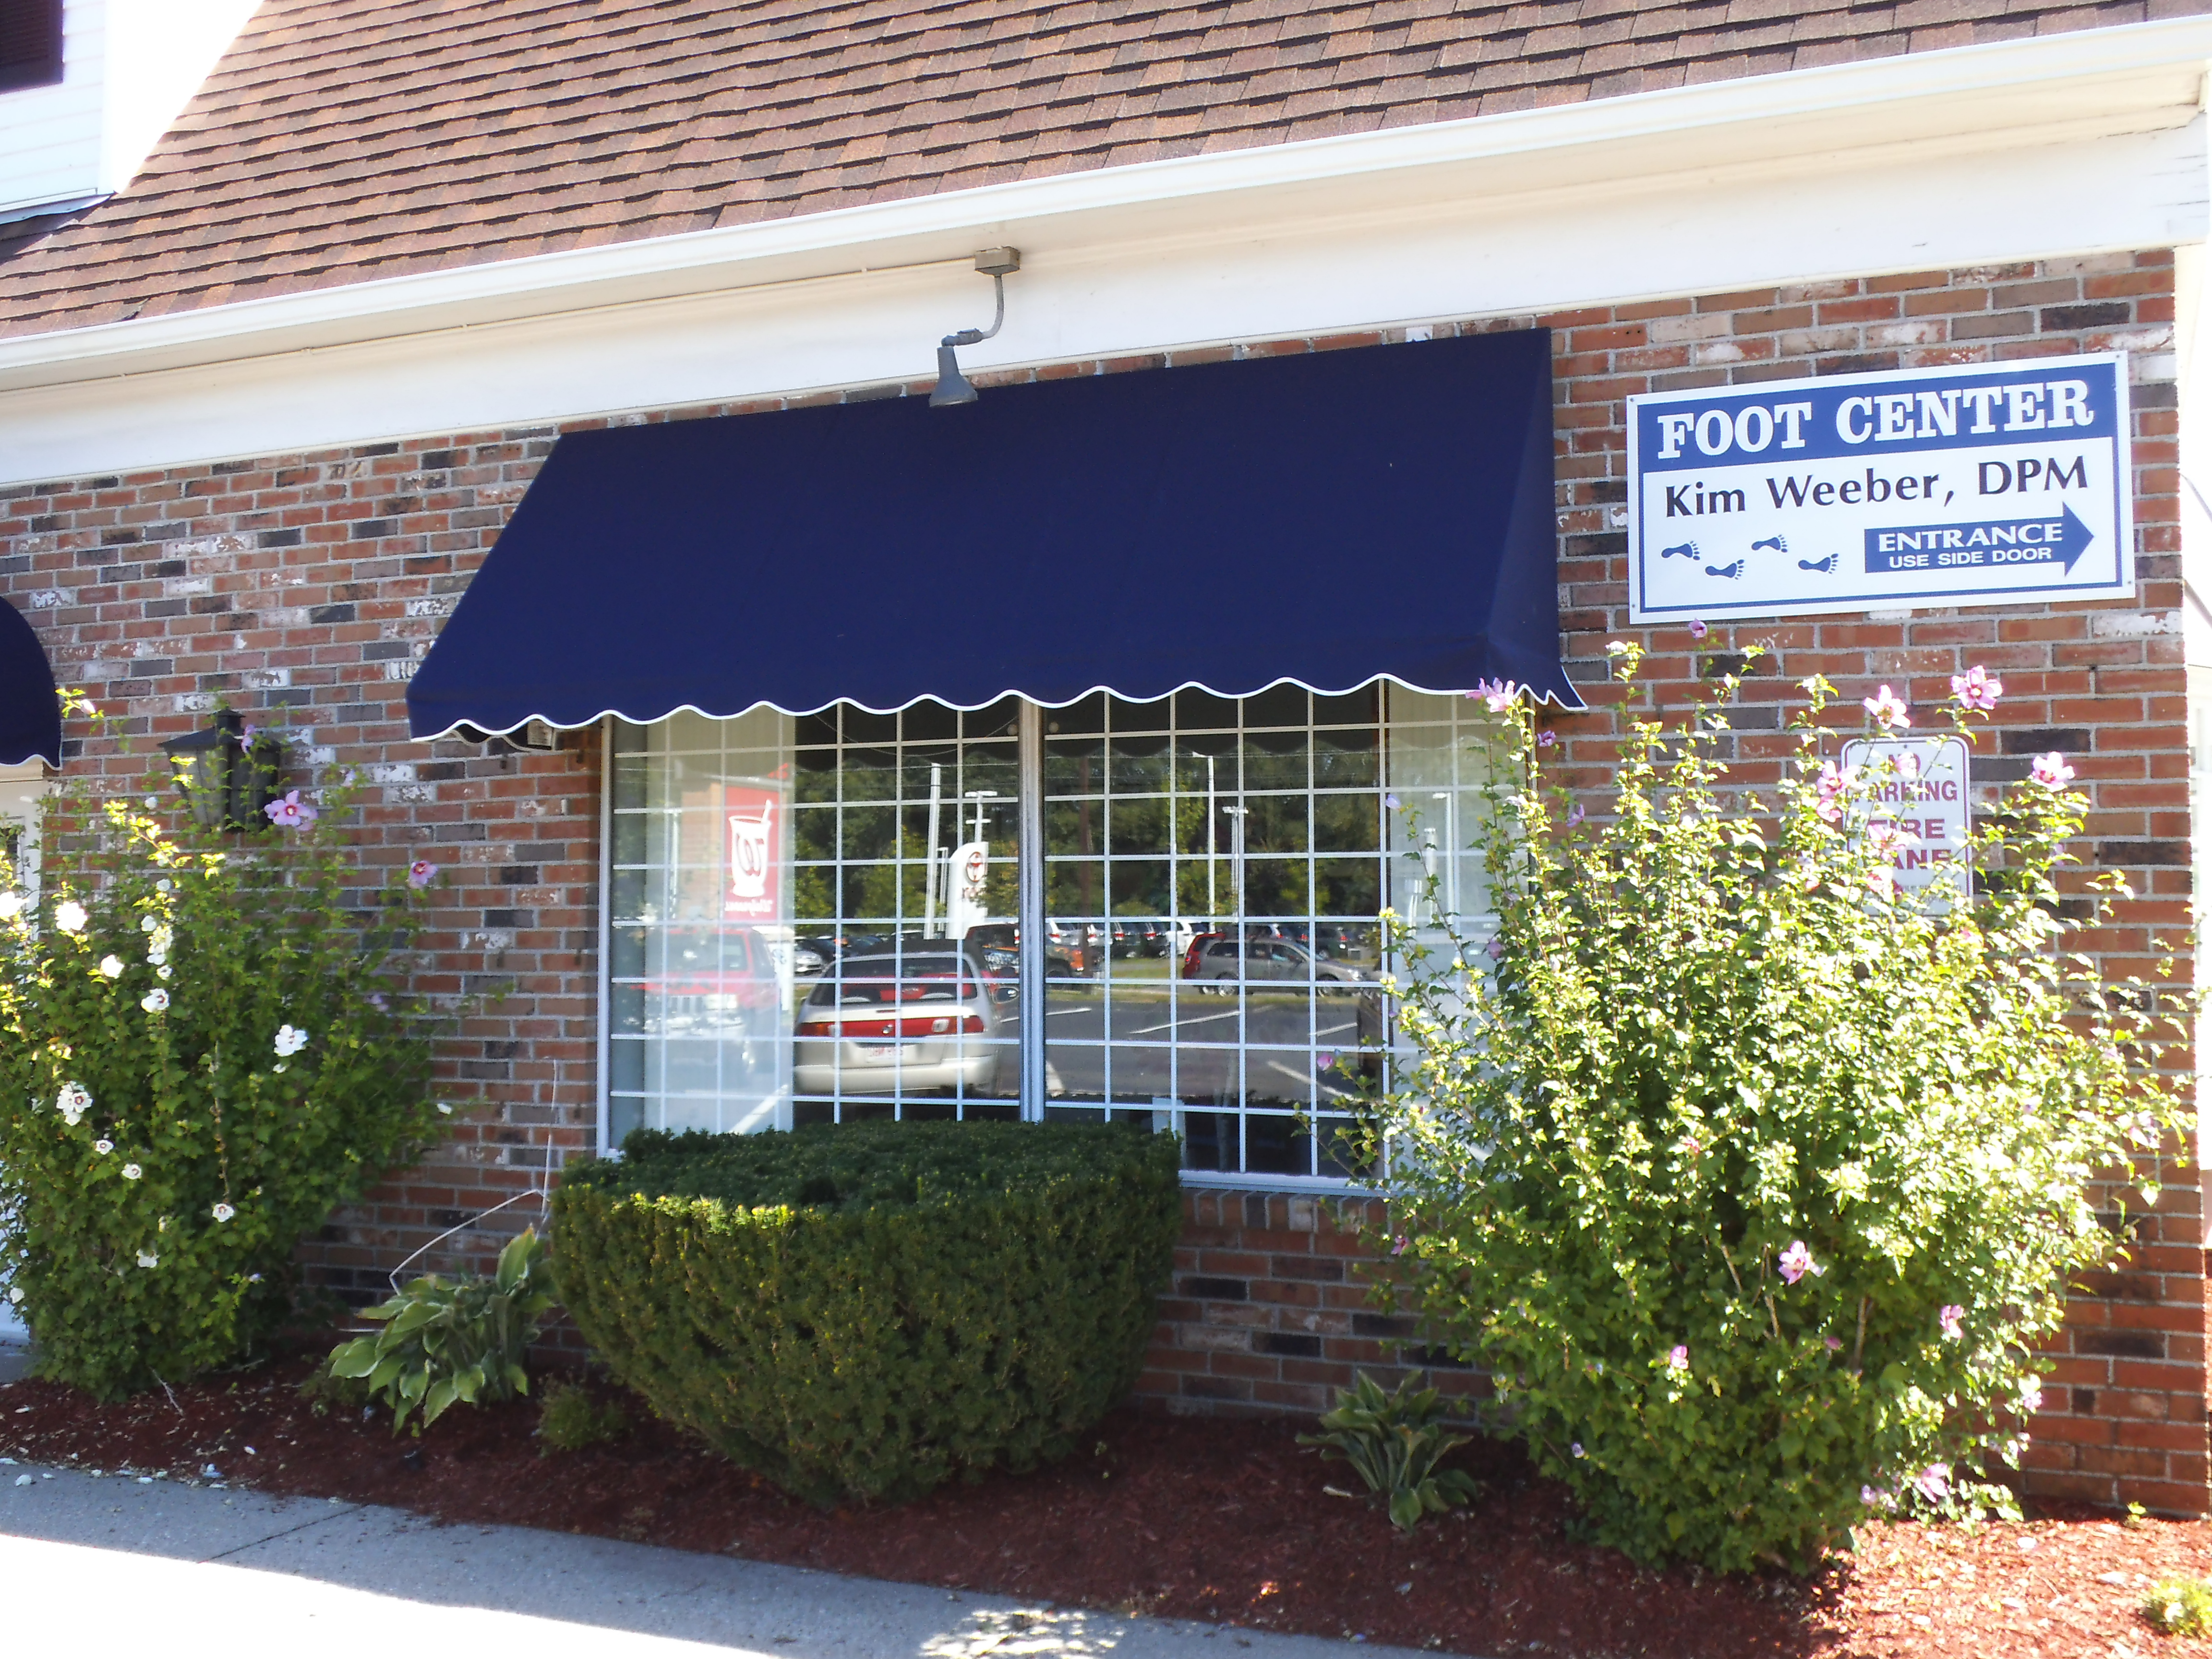 Window Awnings Gallery Leisure Time Awnings